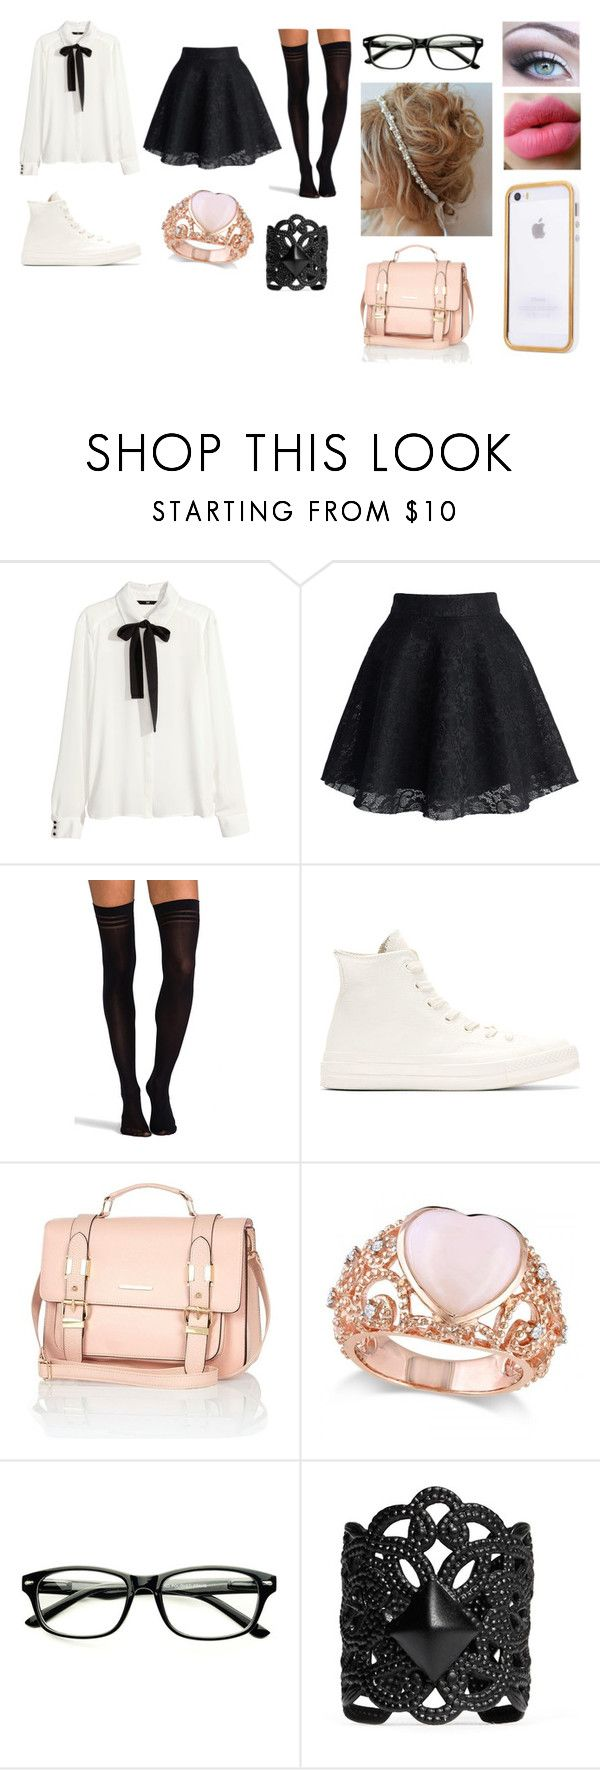 """Untitled #12"" by angelsbebitches ❤ liked on Polyvore featuring H&M, Chicwish, Pretty Polly, Converse, River Island, Allurez and Ela Stone"